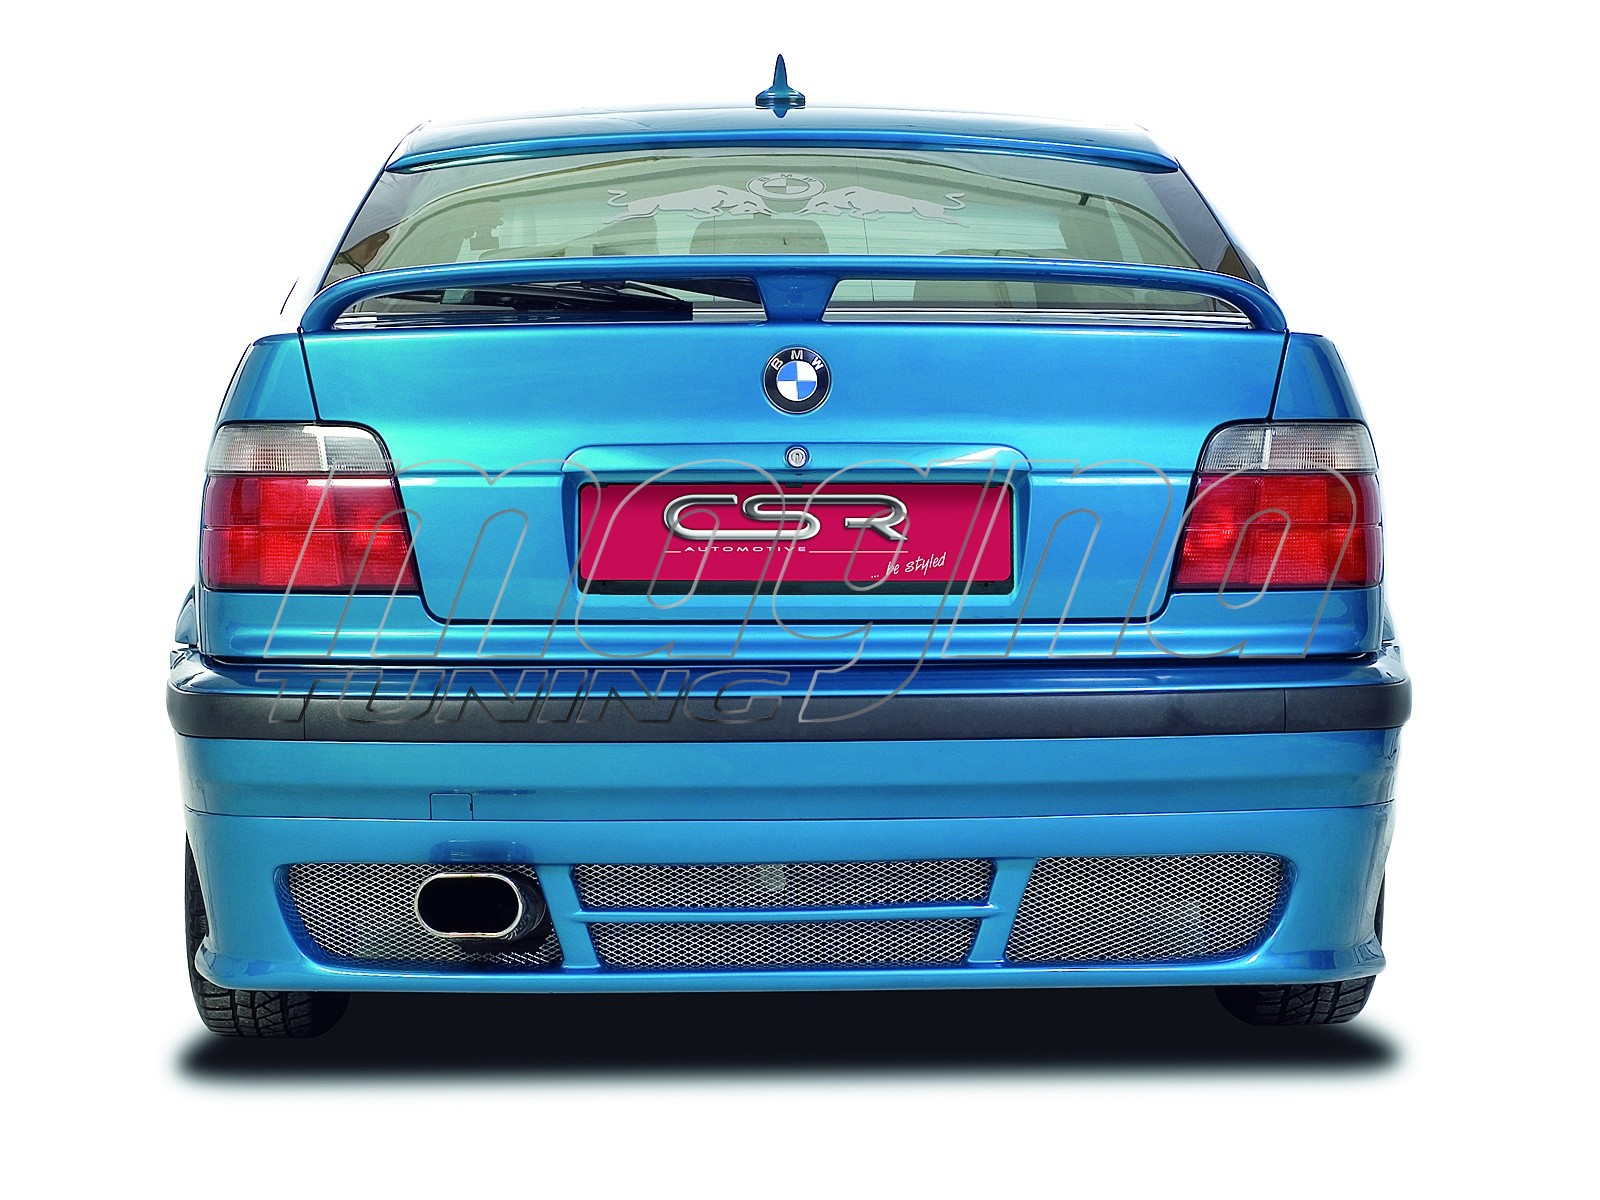 bmw e36 compact xl line rear bumper extension. Black Bedroom Furniture Sets. Home Design Ideas